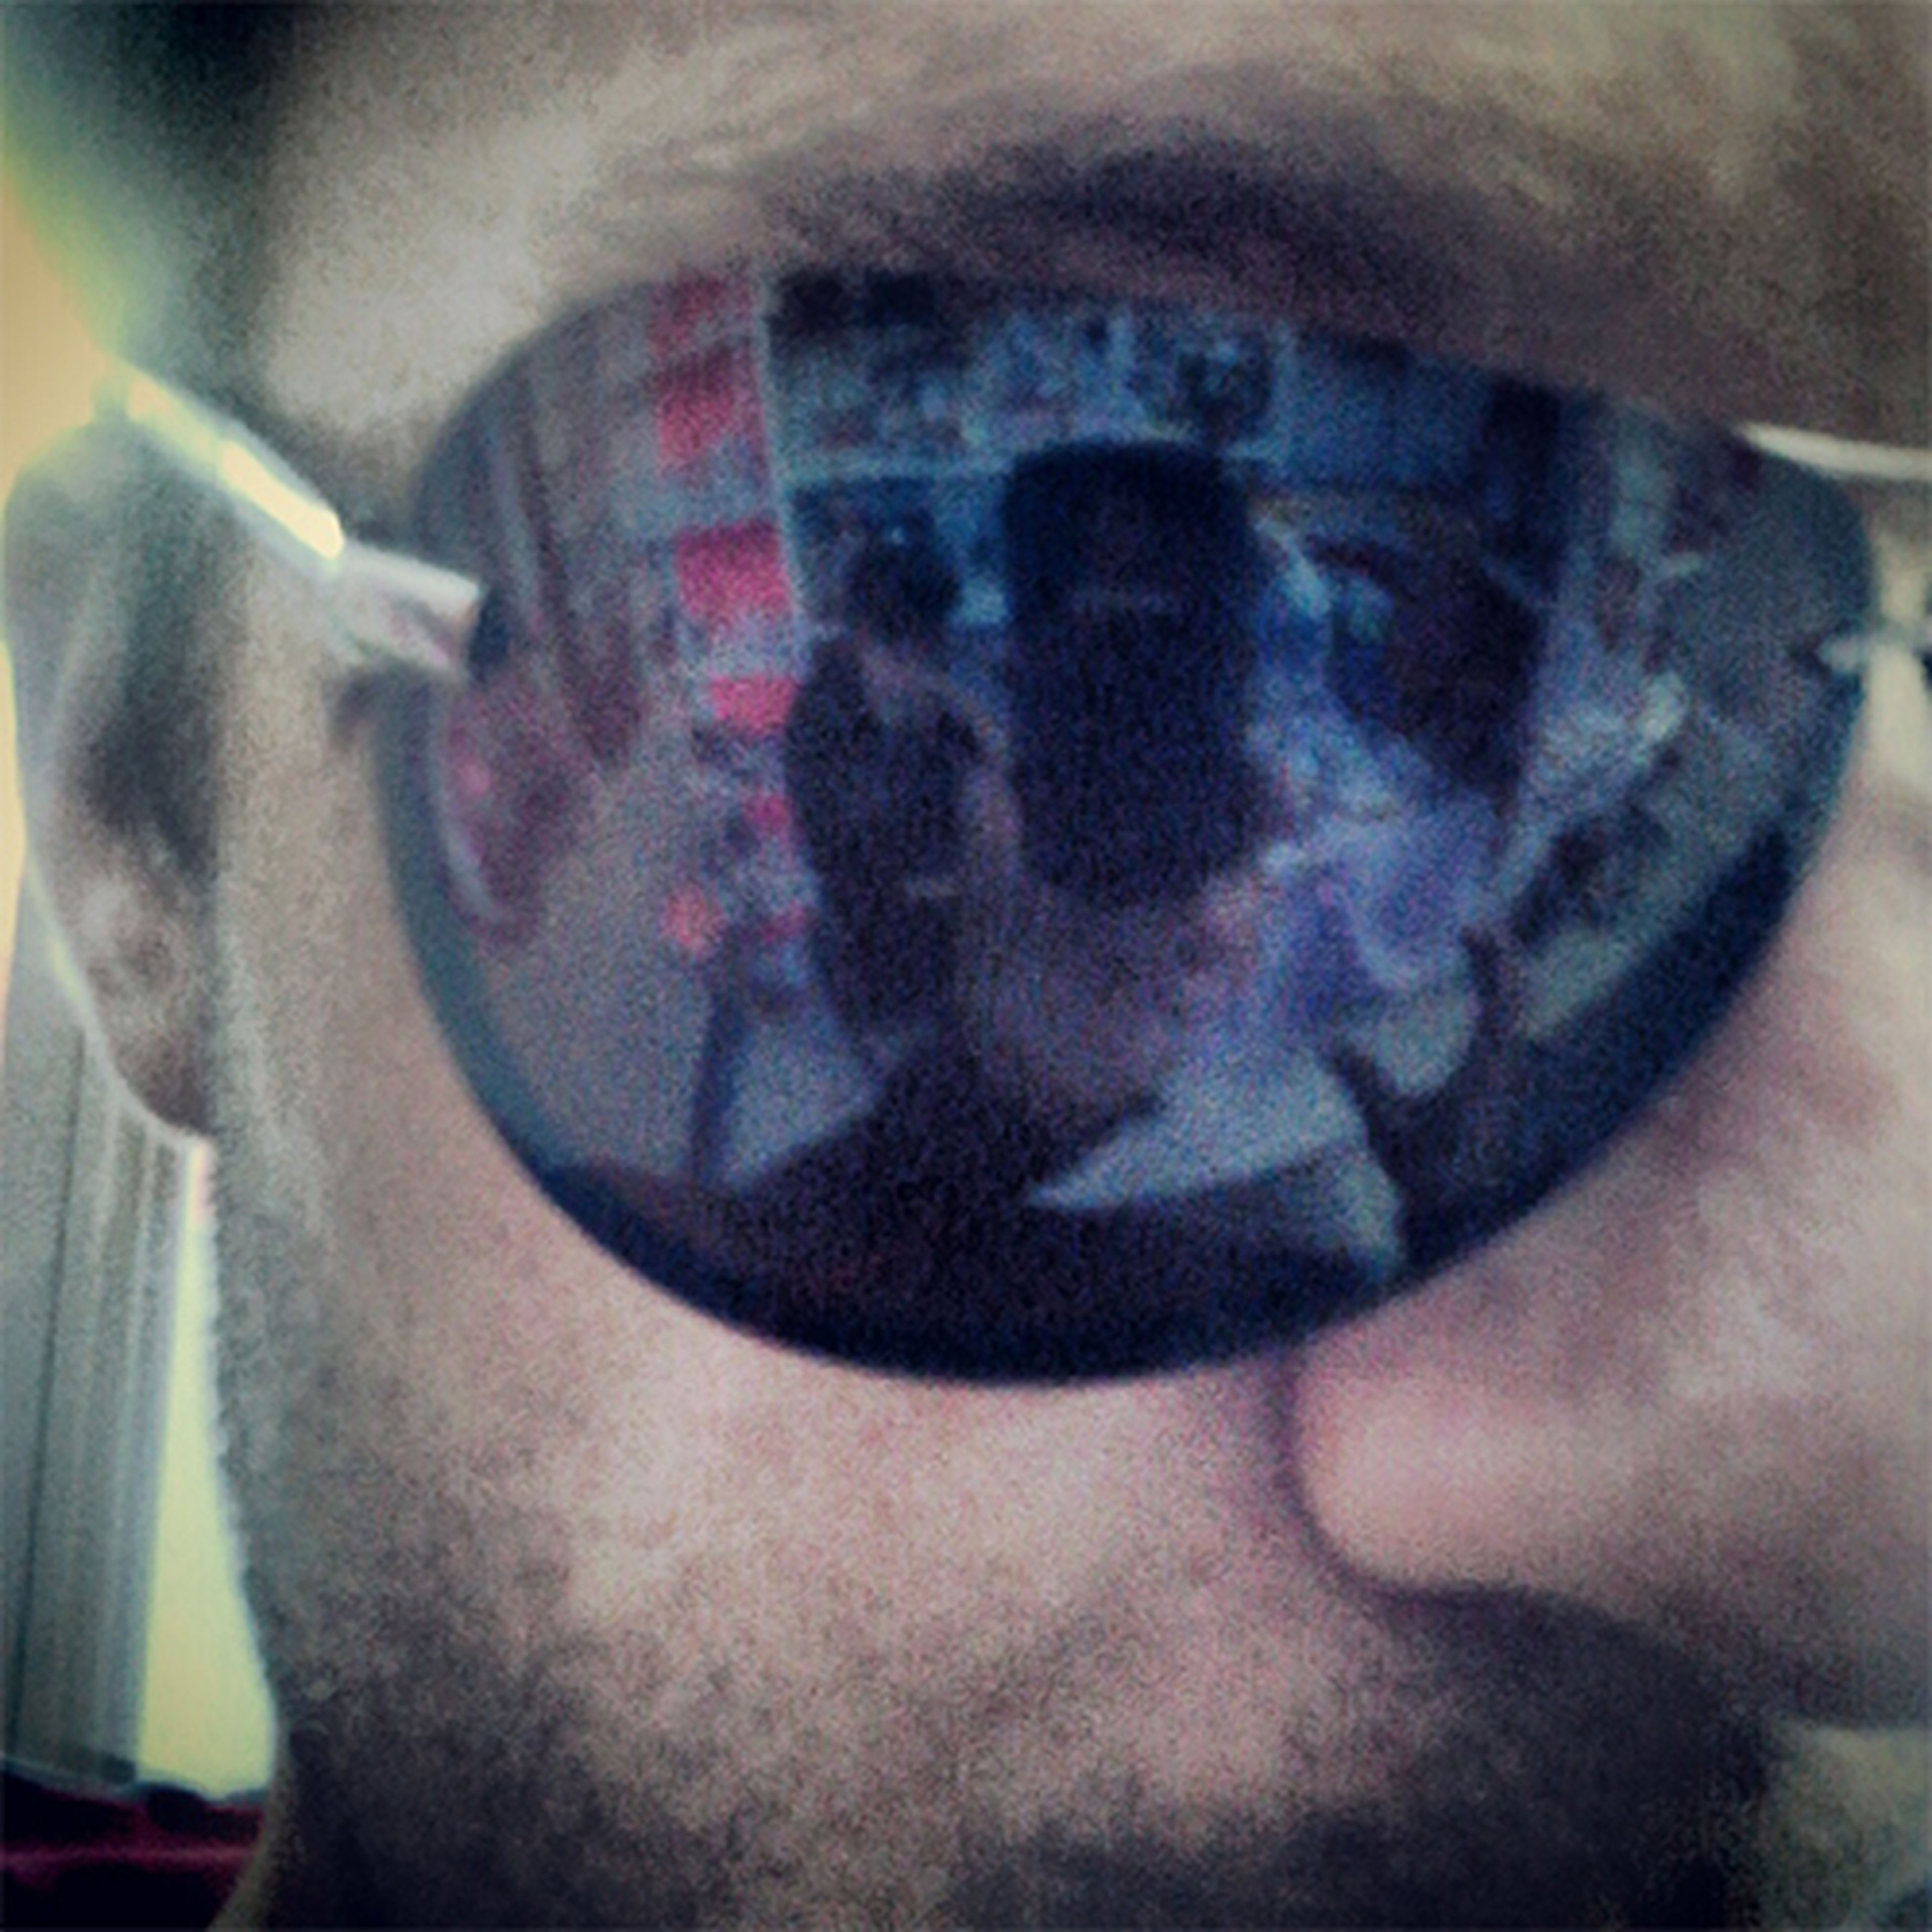 close-up, person, indoors, part of, lifestyles, leisure activity, holding, reflection, glass - material, focus on foreground, unrecognizable person, cropped, men, human finger, transparent, headshot, photography themes